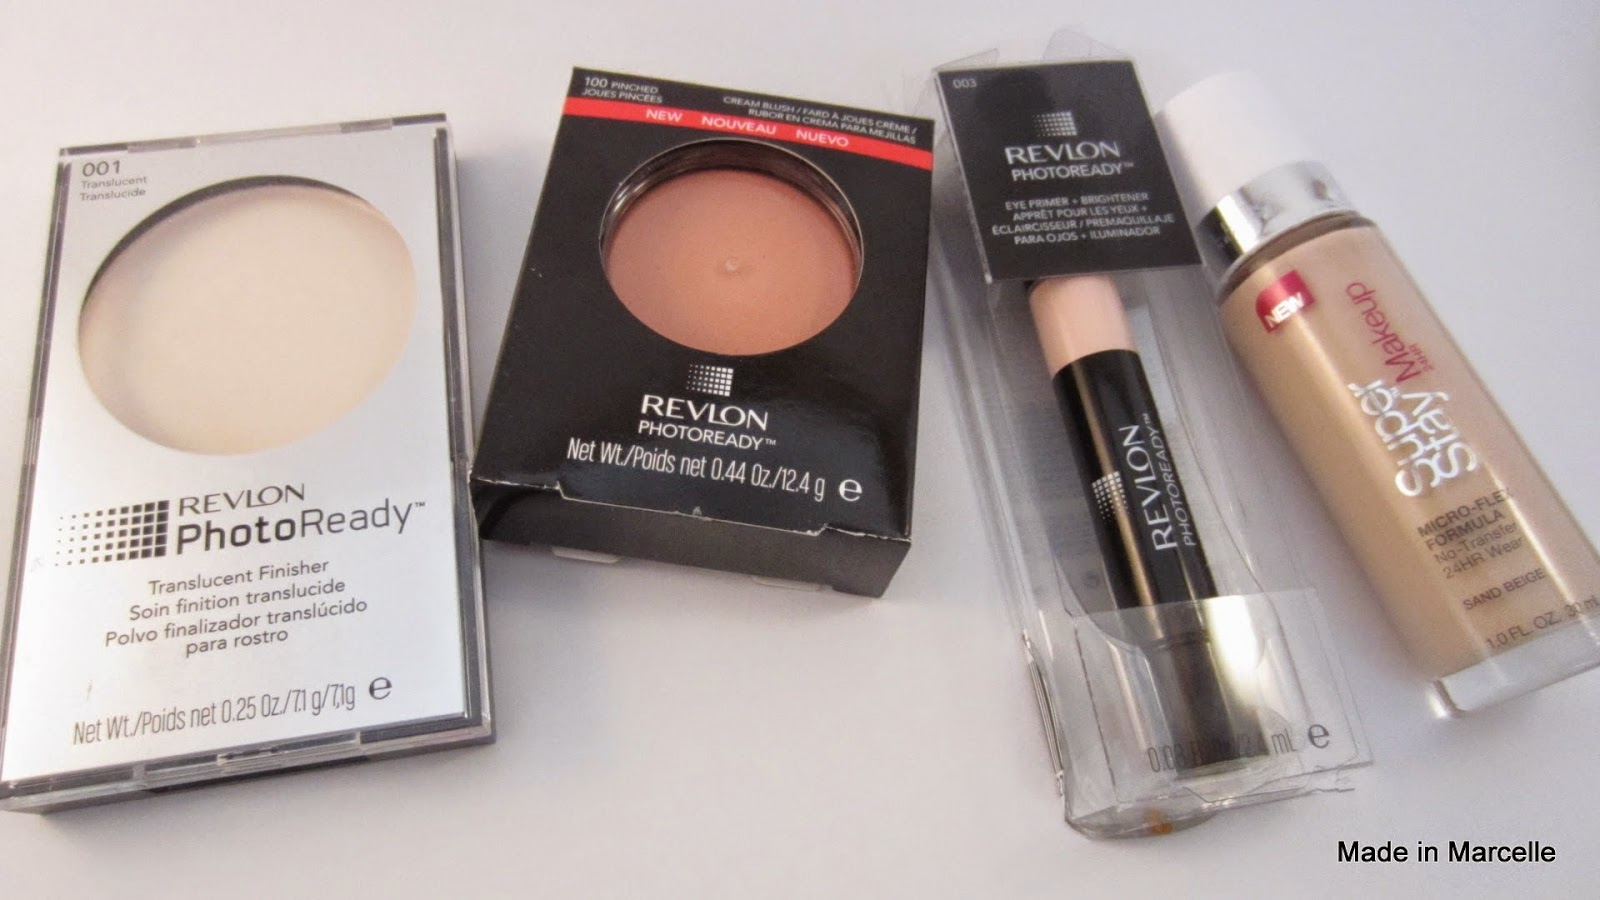 2464023e192 First up, face products. Revlon is also having a seperate promotion where  they give either the face or eye primer for any Photo Ready products  purchased so ...